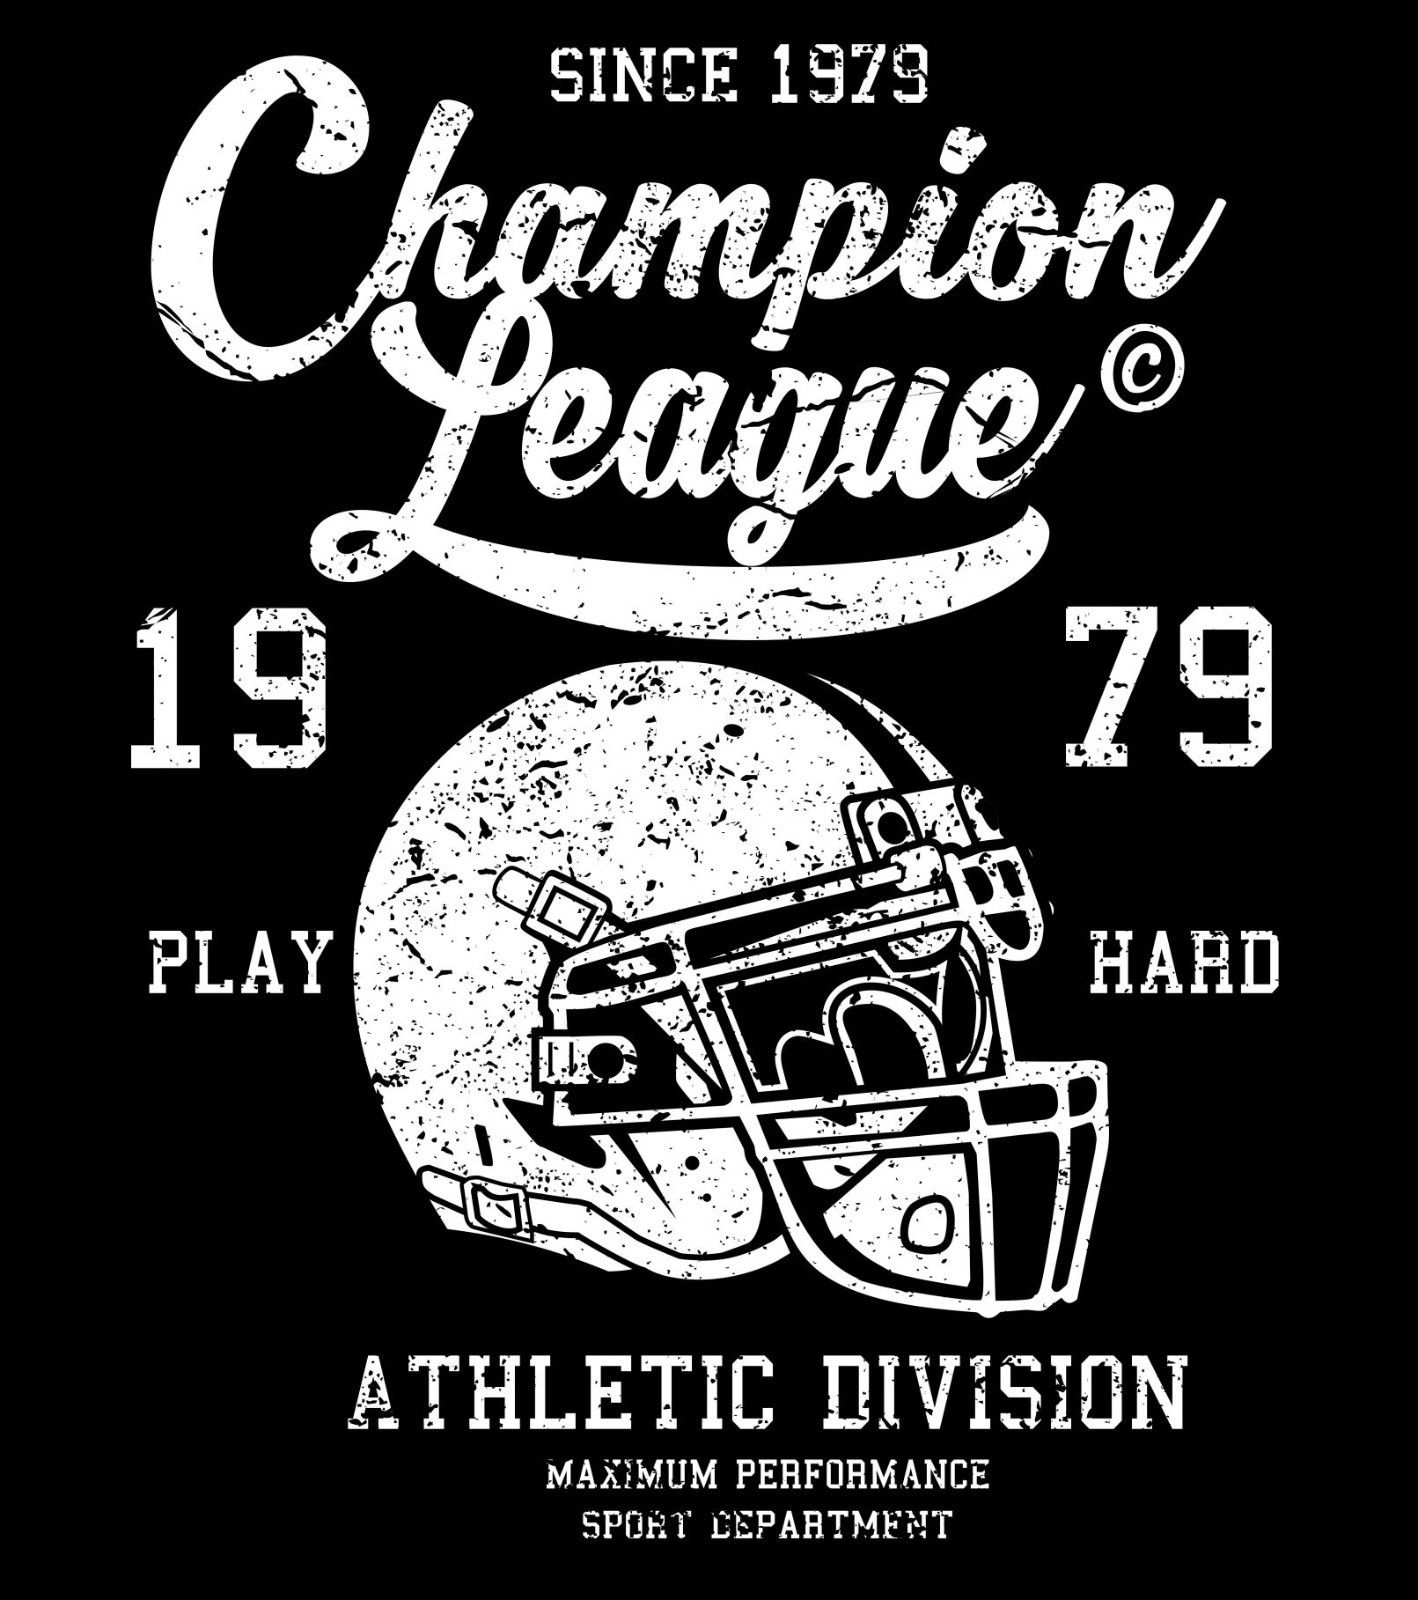 2018 New Fashion Men Tee Shirt Championship League 1979, American Footballer, USA, Adult Unisex & Female T-Shirt